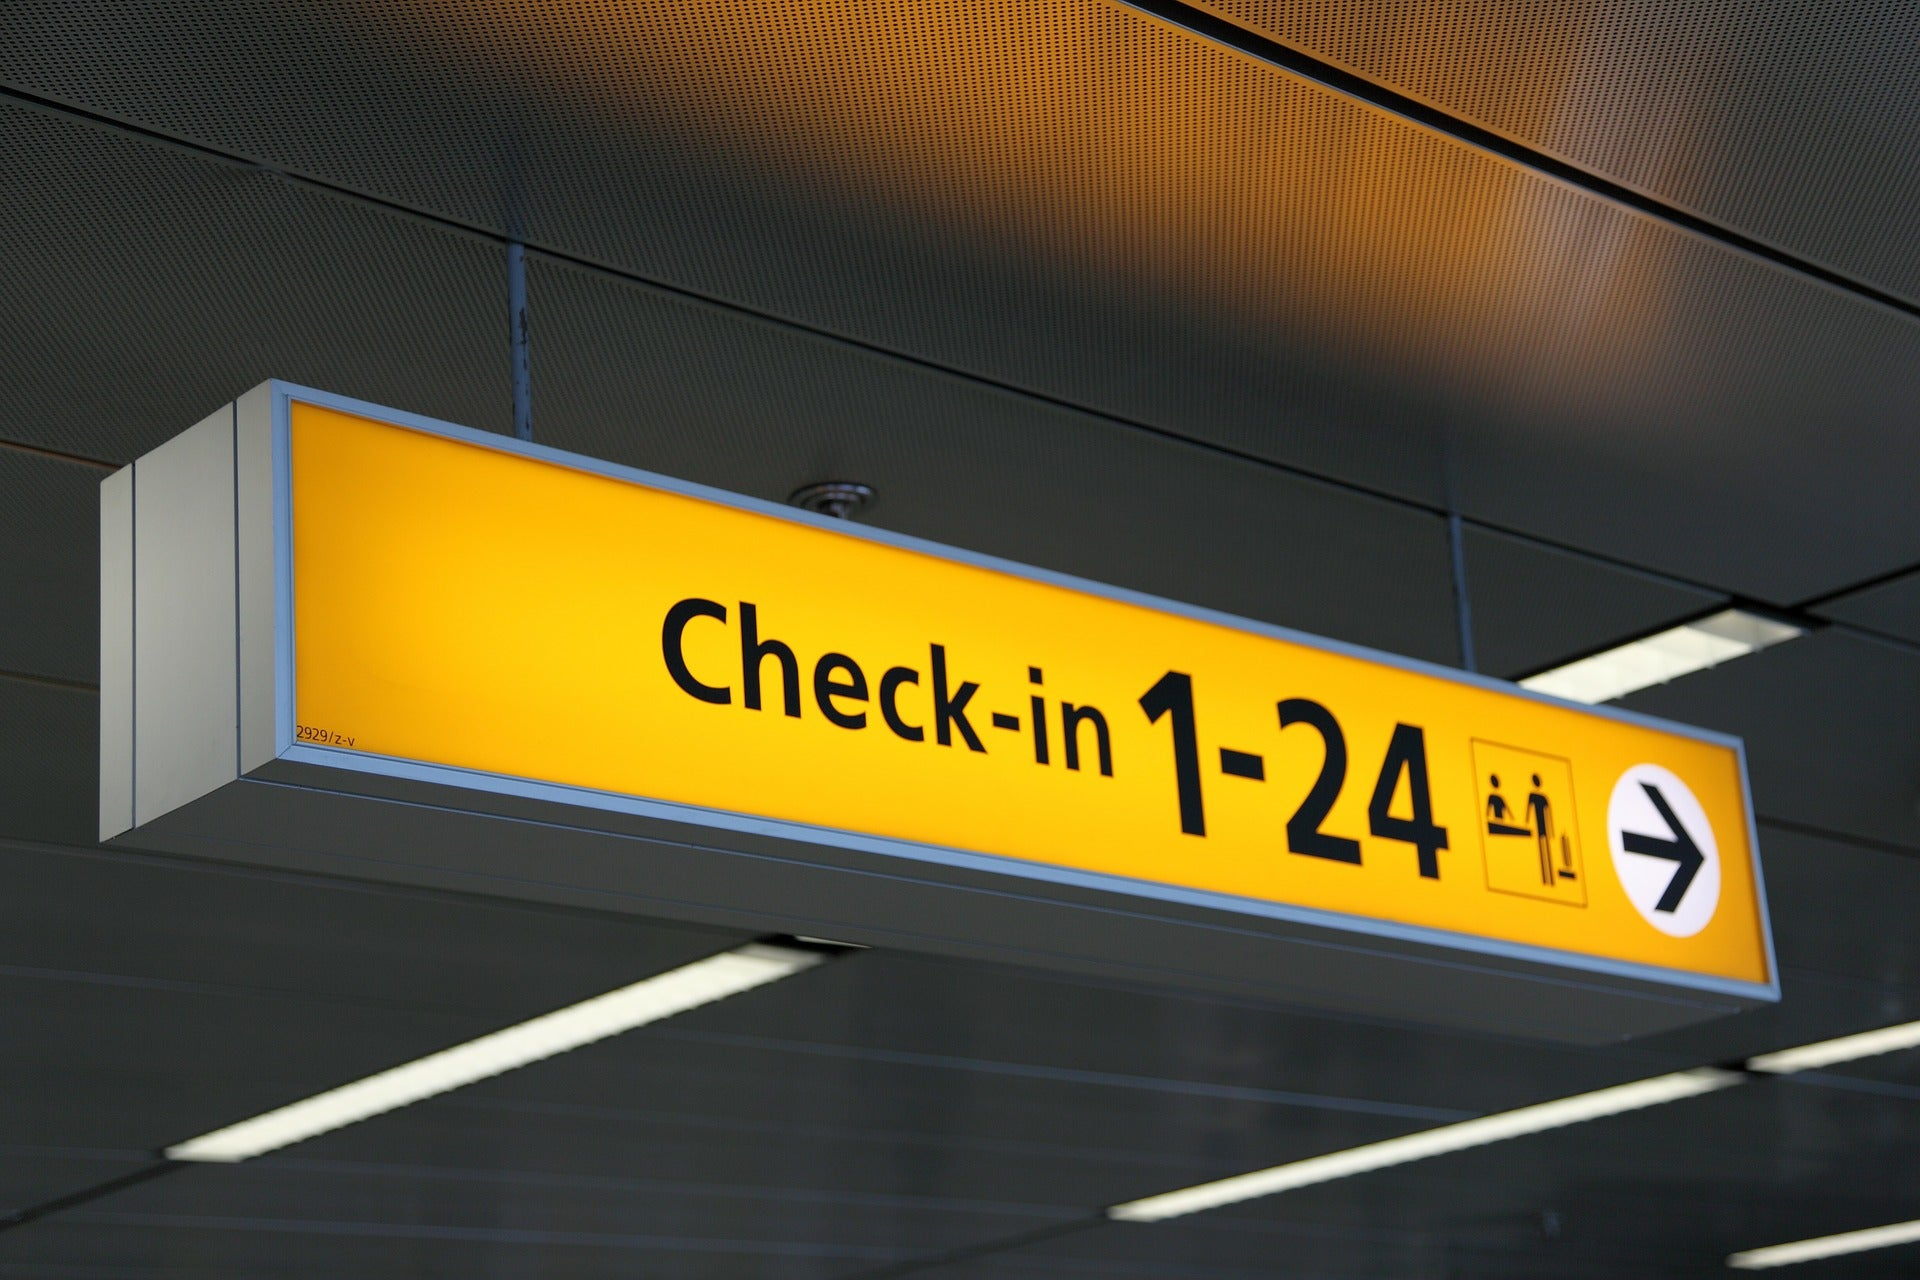 AMADEUS PROFESSIONAL AIRPORT CUSTOMER SERVICE AGENT CHECK IN